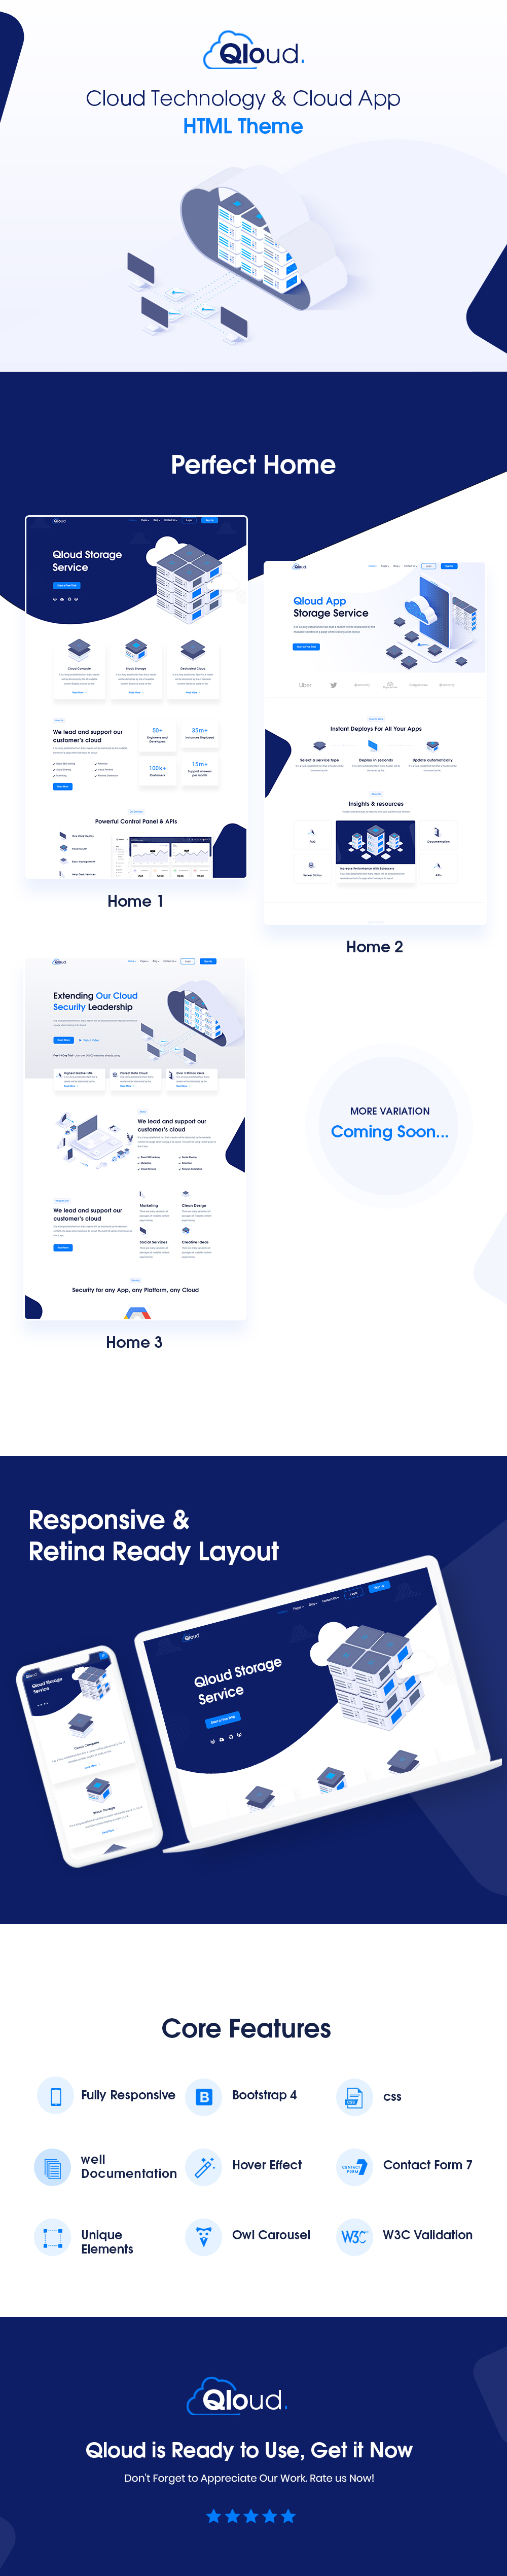 WordPress Hosting Theme With Whmcs | Qloud | Iqonic Design cloud computing, apps and server html, whmcs, vue & angular template Qloud live prv